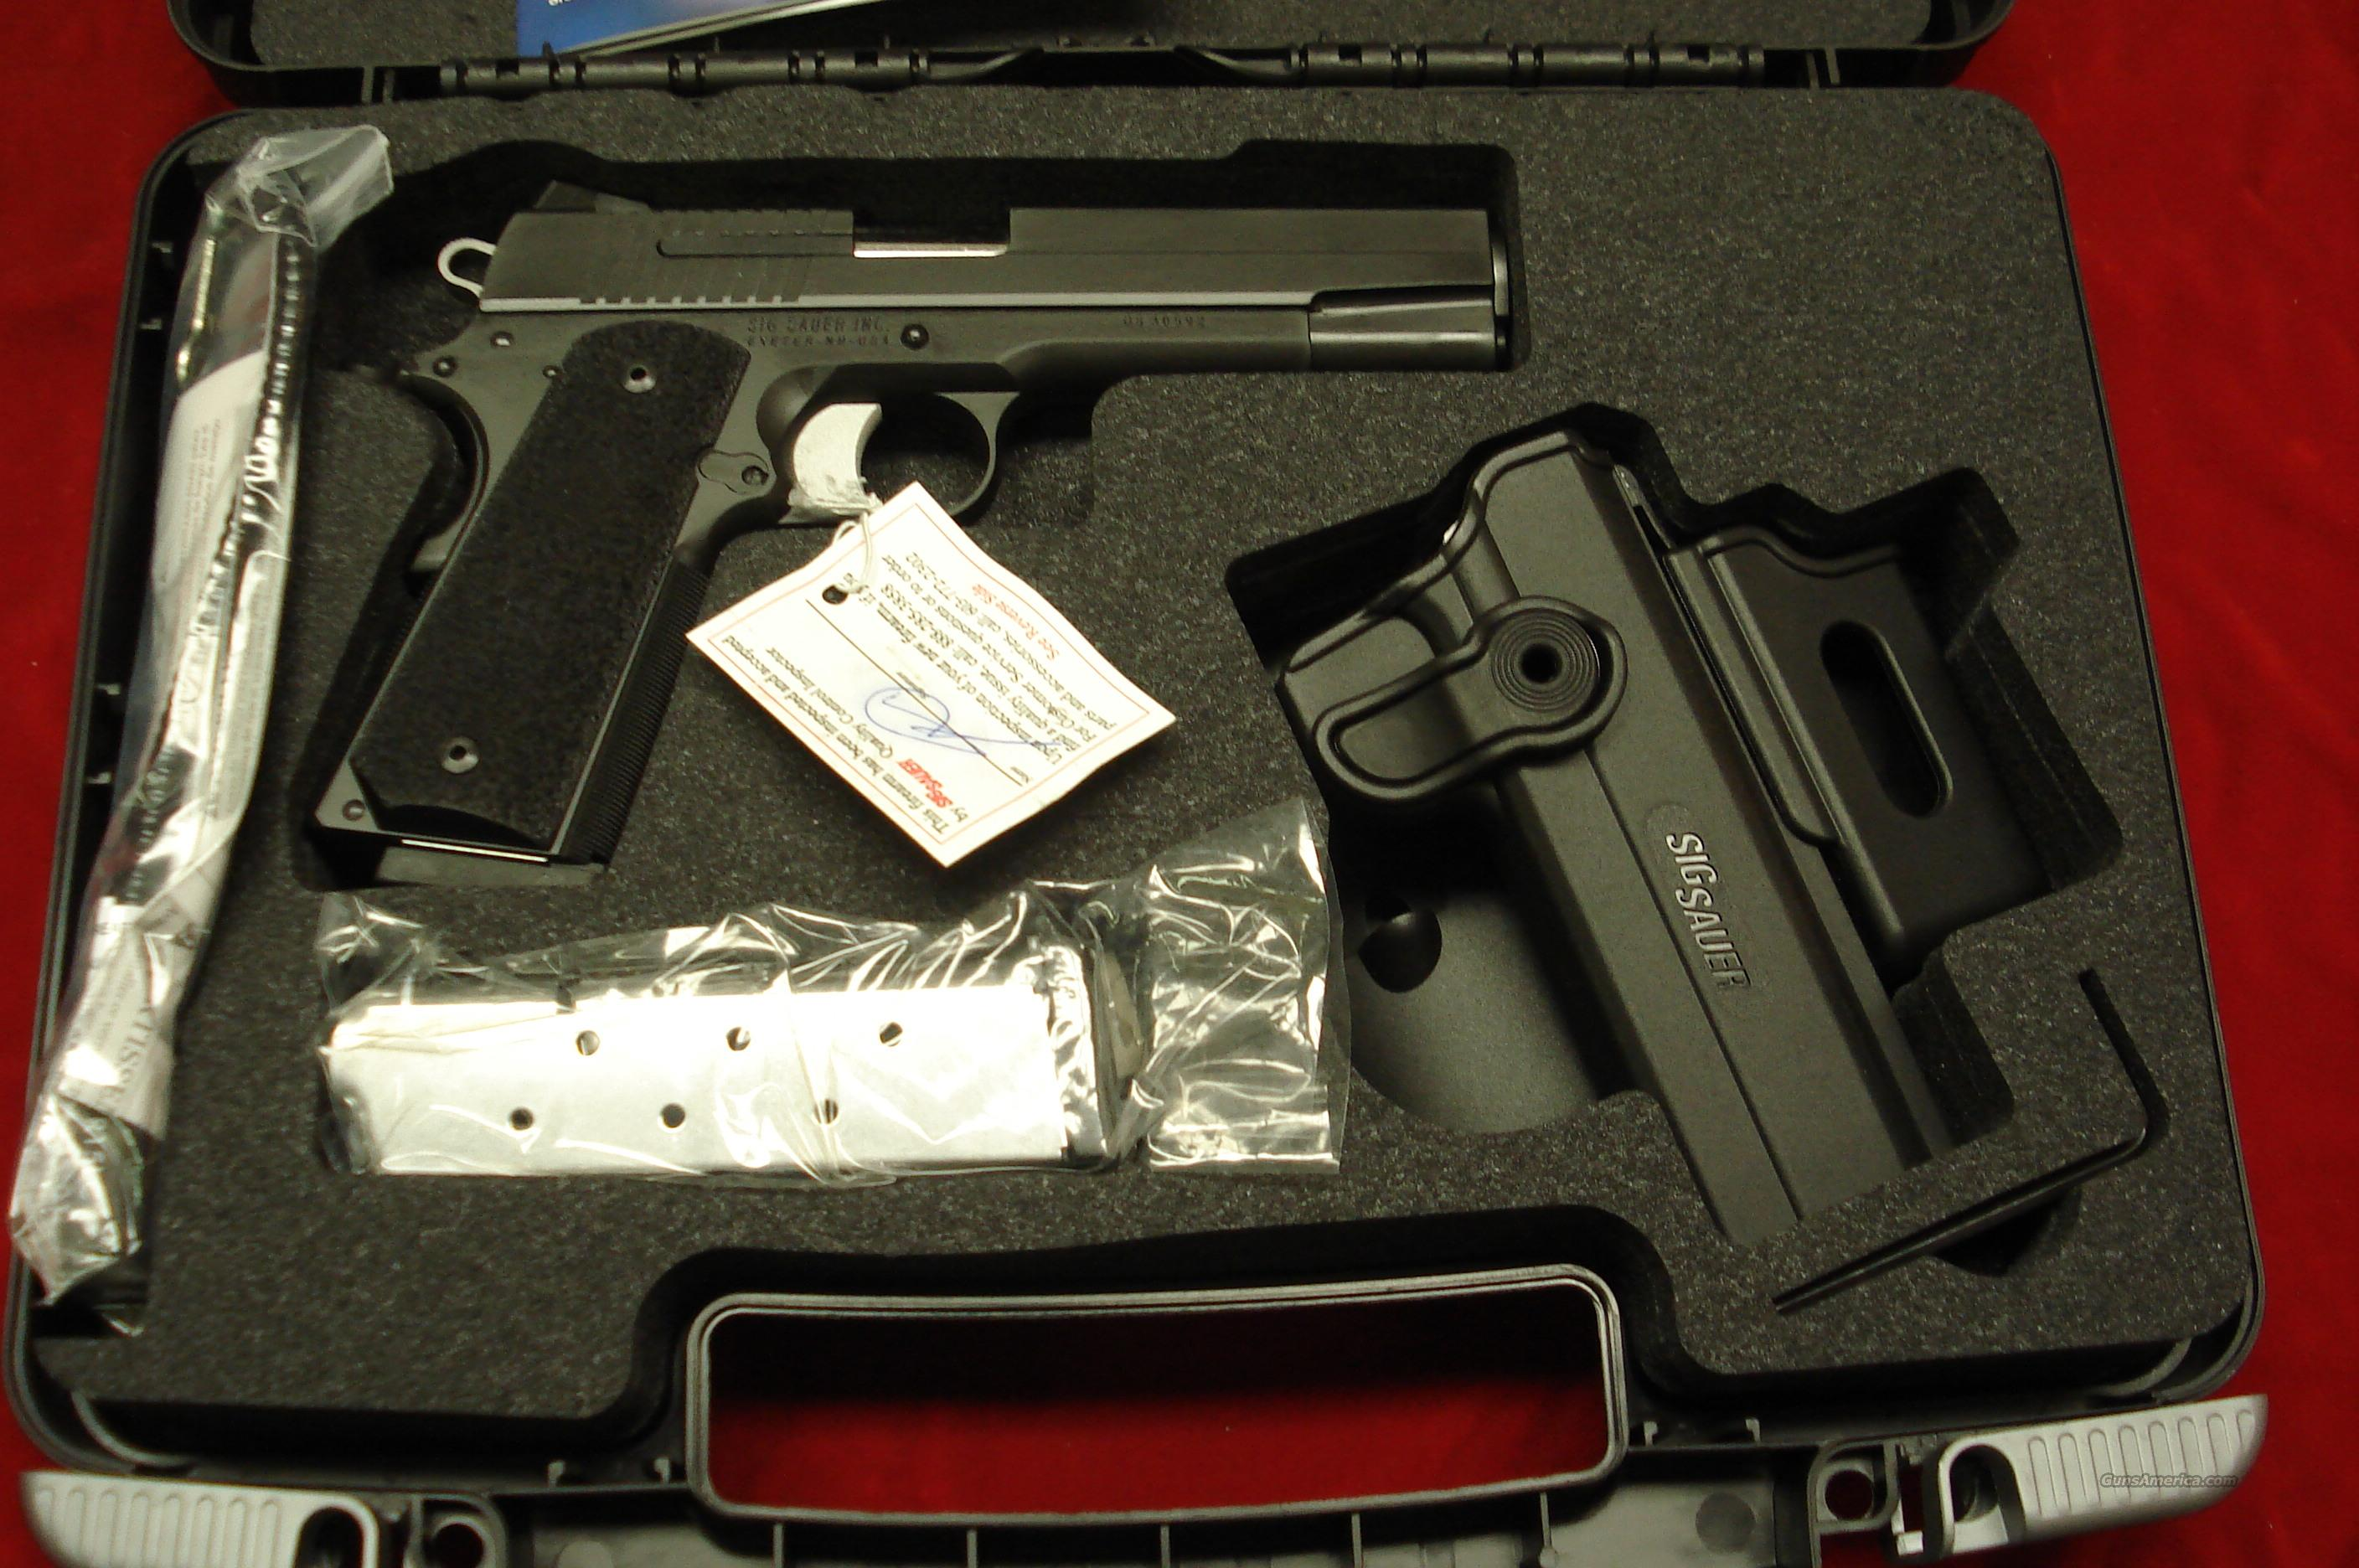 SIG SAUER 1911 TACPAC 45ACP WITH  3 MAGAZINES AND FACTORY HOLSTER NEW  Guns > Pistols > Sig - Sauer/Sigarms Pistols > 1911